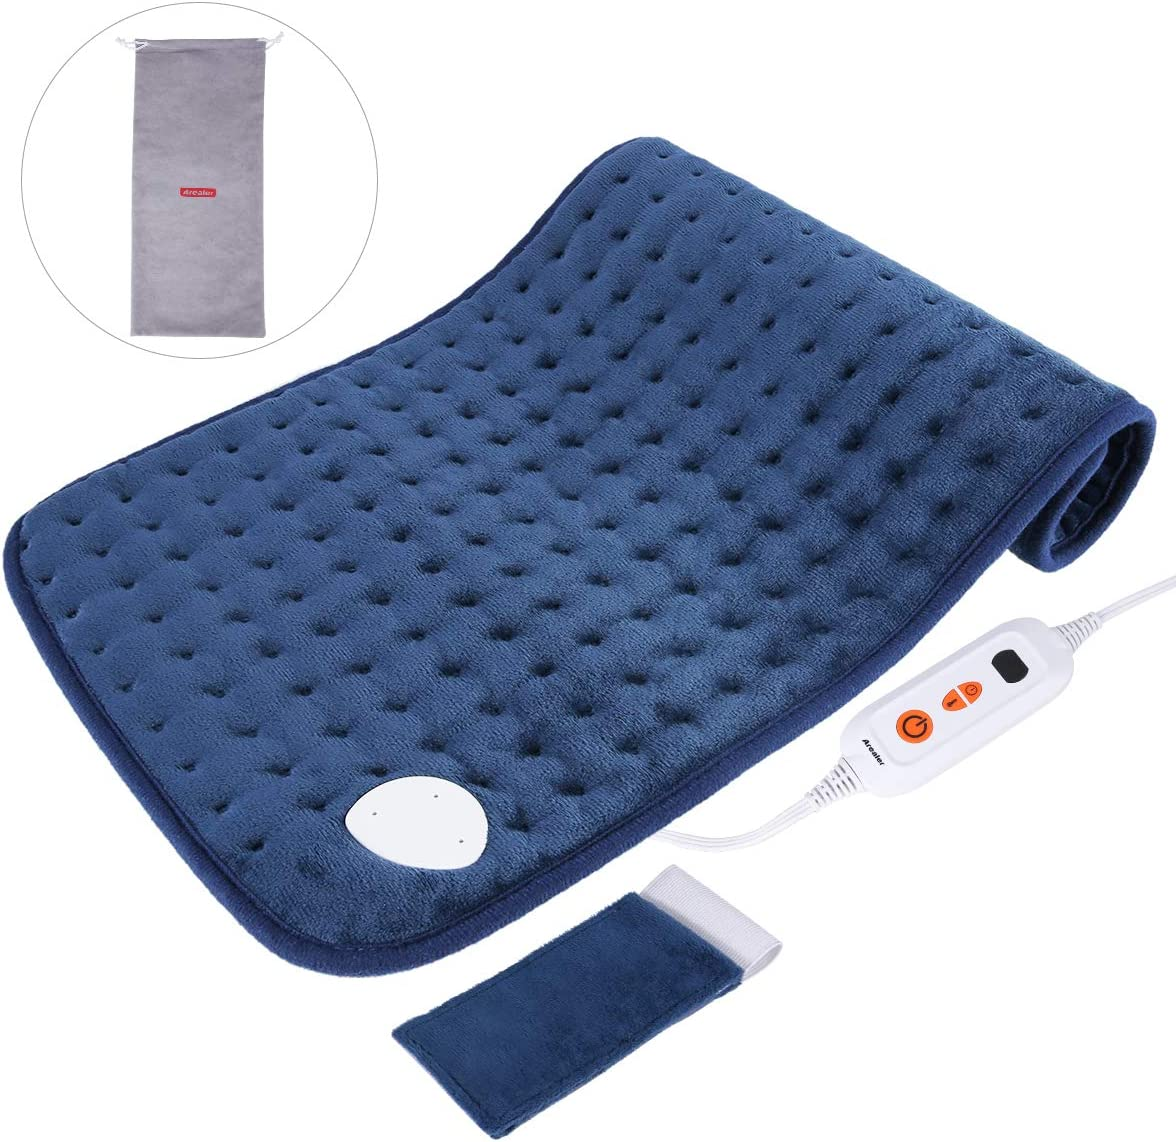 "Arealer Heating Pad Fasting Heating 6 Temperature Settings Washable Auto Shut-Off Therapy with Storage Bag 12"" x 24"""